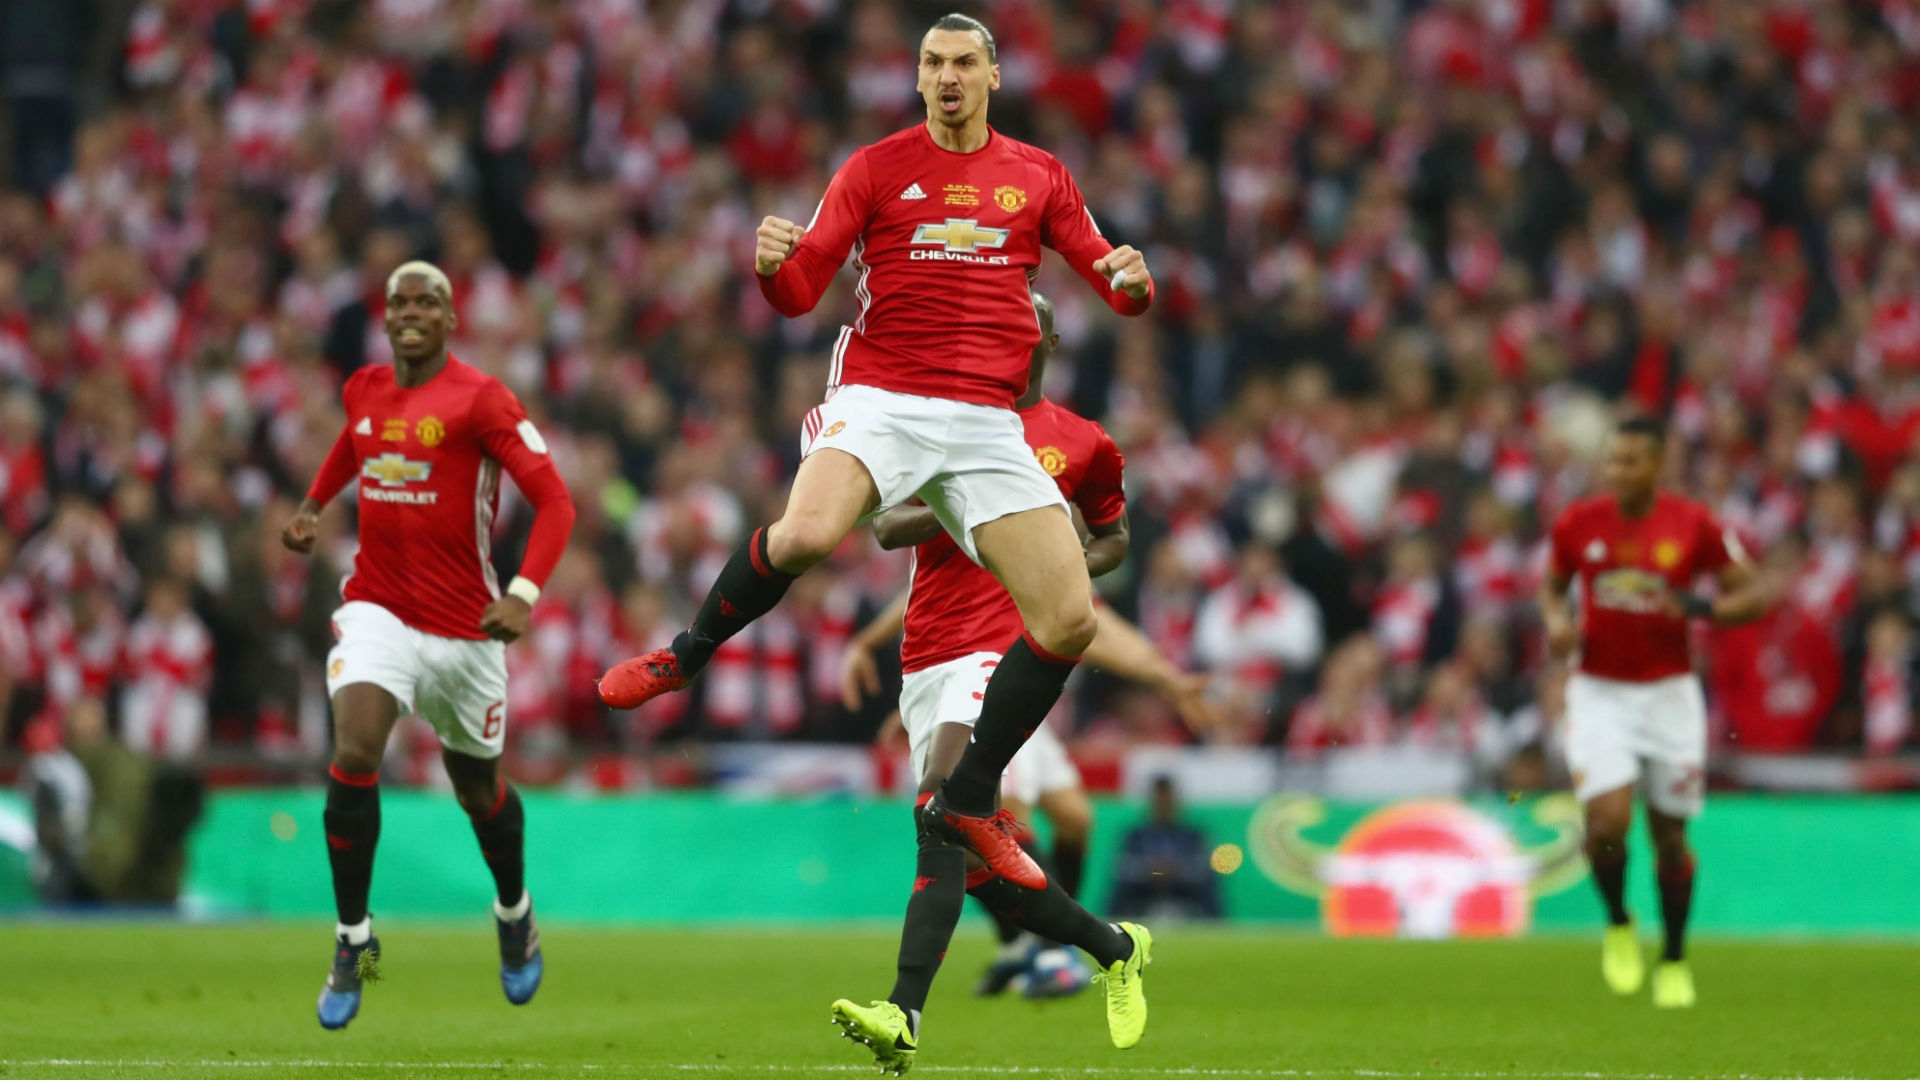 In other news, Zlatan Ibrahimovic has been recuperating from an injury at Manchester United's training grounds. Jose Mourinho has continued to speak highly of the player and it is expected that if all goes well, the striker could make a return to the Red Devils.